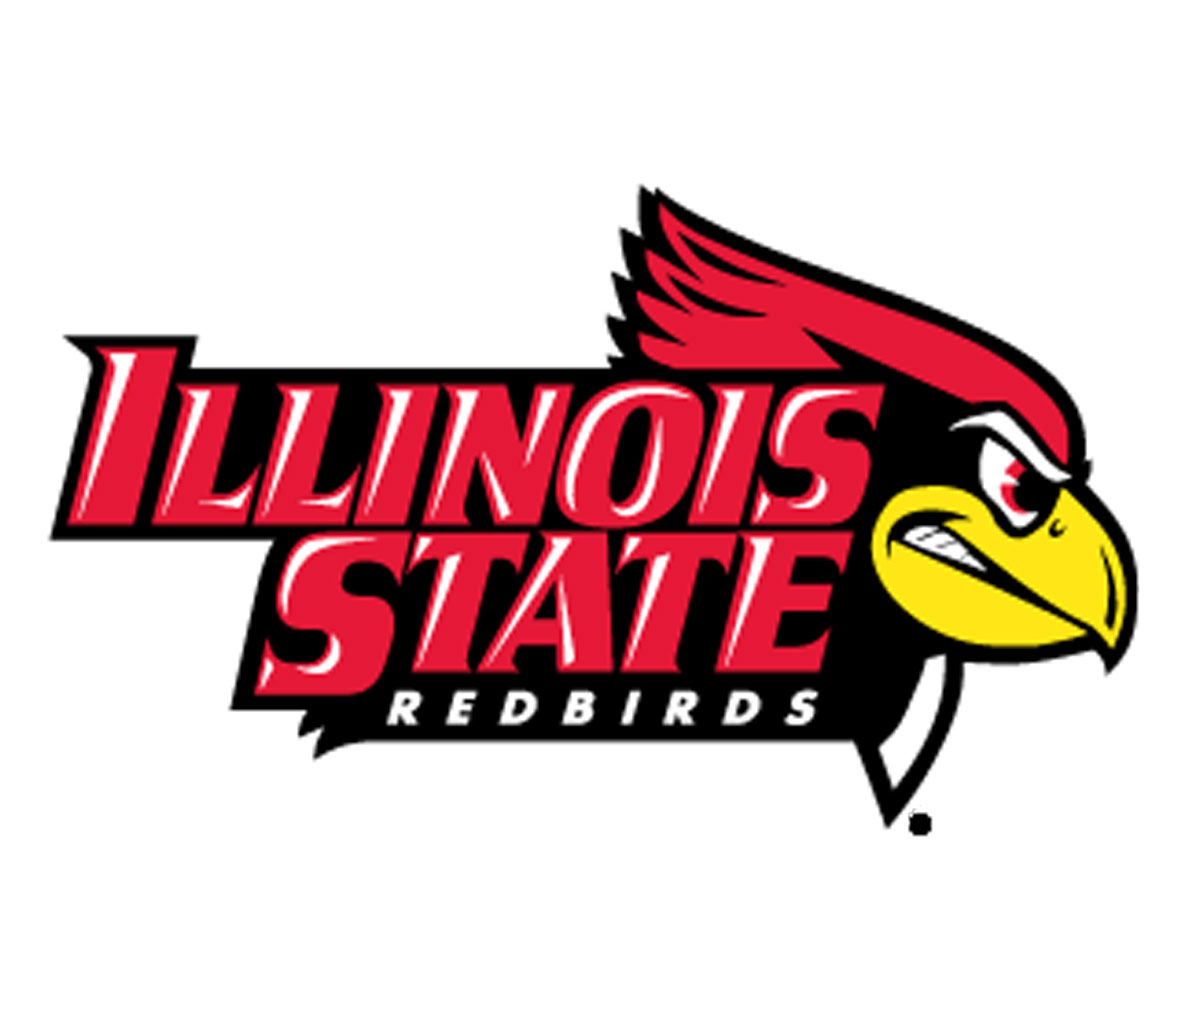 Illinois State Red Birds